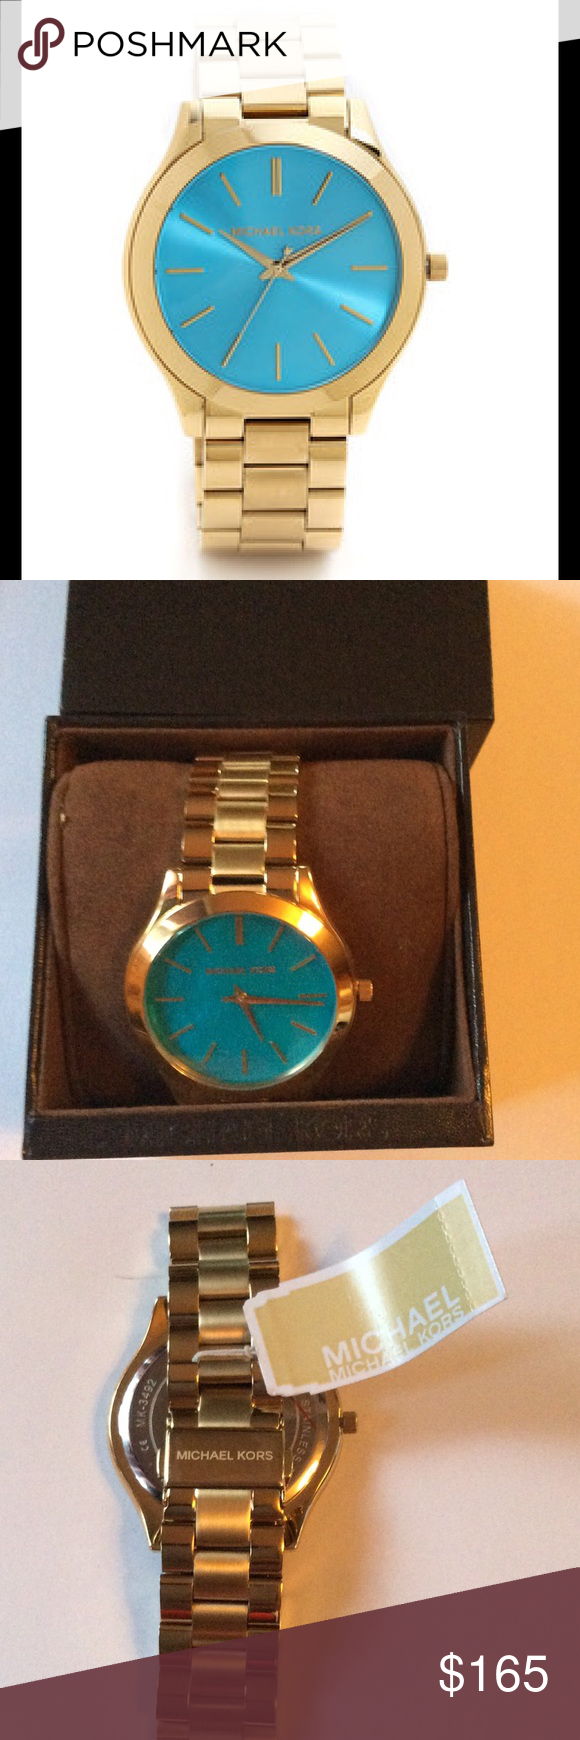 09e90175f7ea6 Michael Kors Slim Runway Blue Watch Gold-Tone NWT Gold tone stainless steel  case with